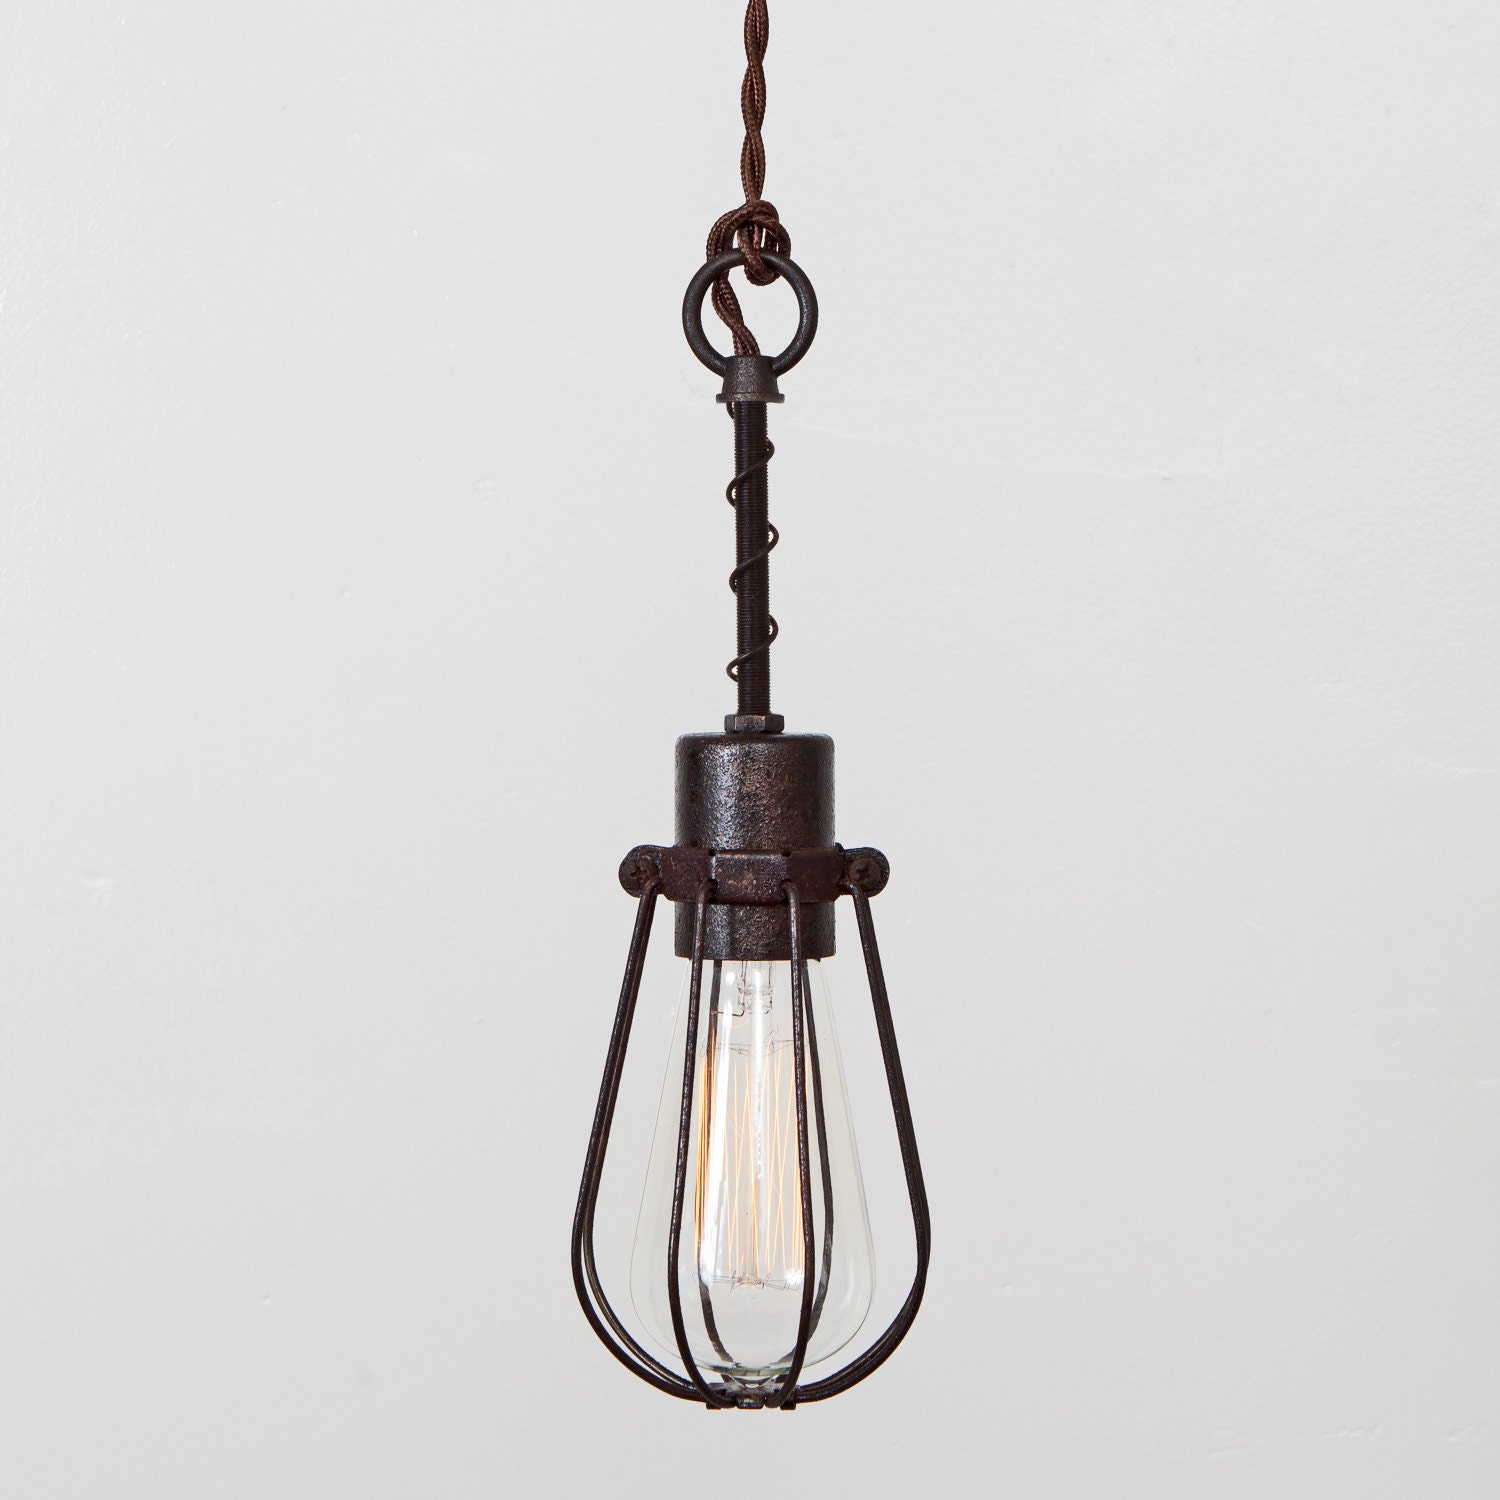 hanging ceiling lights that plug in industrial spring pendant light. Black Bedroom Furniture Sets. Home Design Ideas